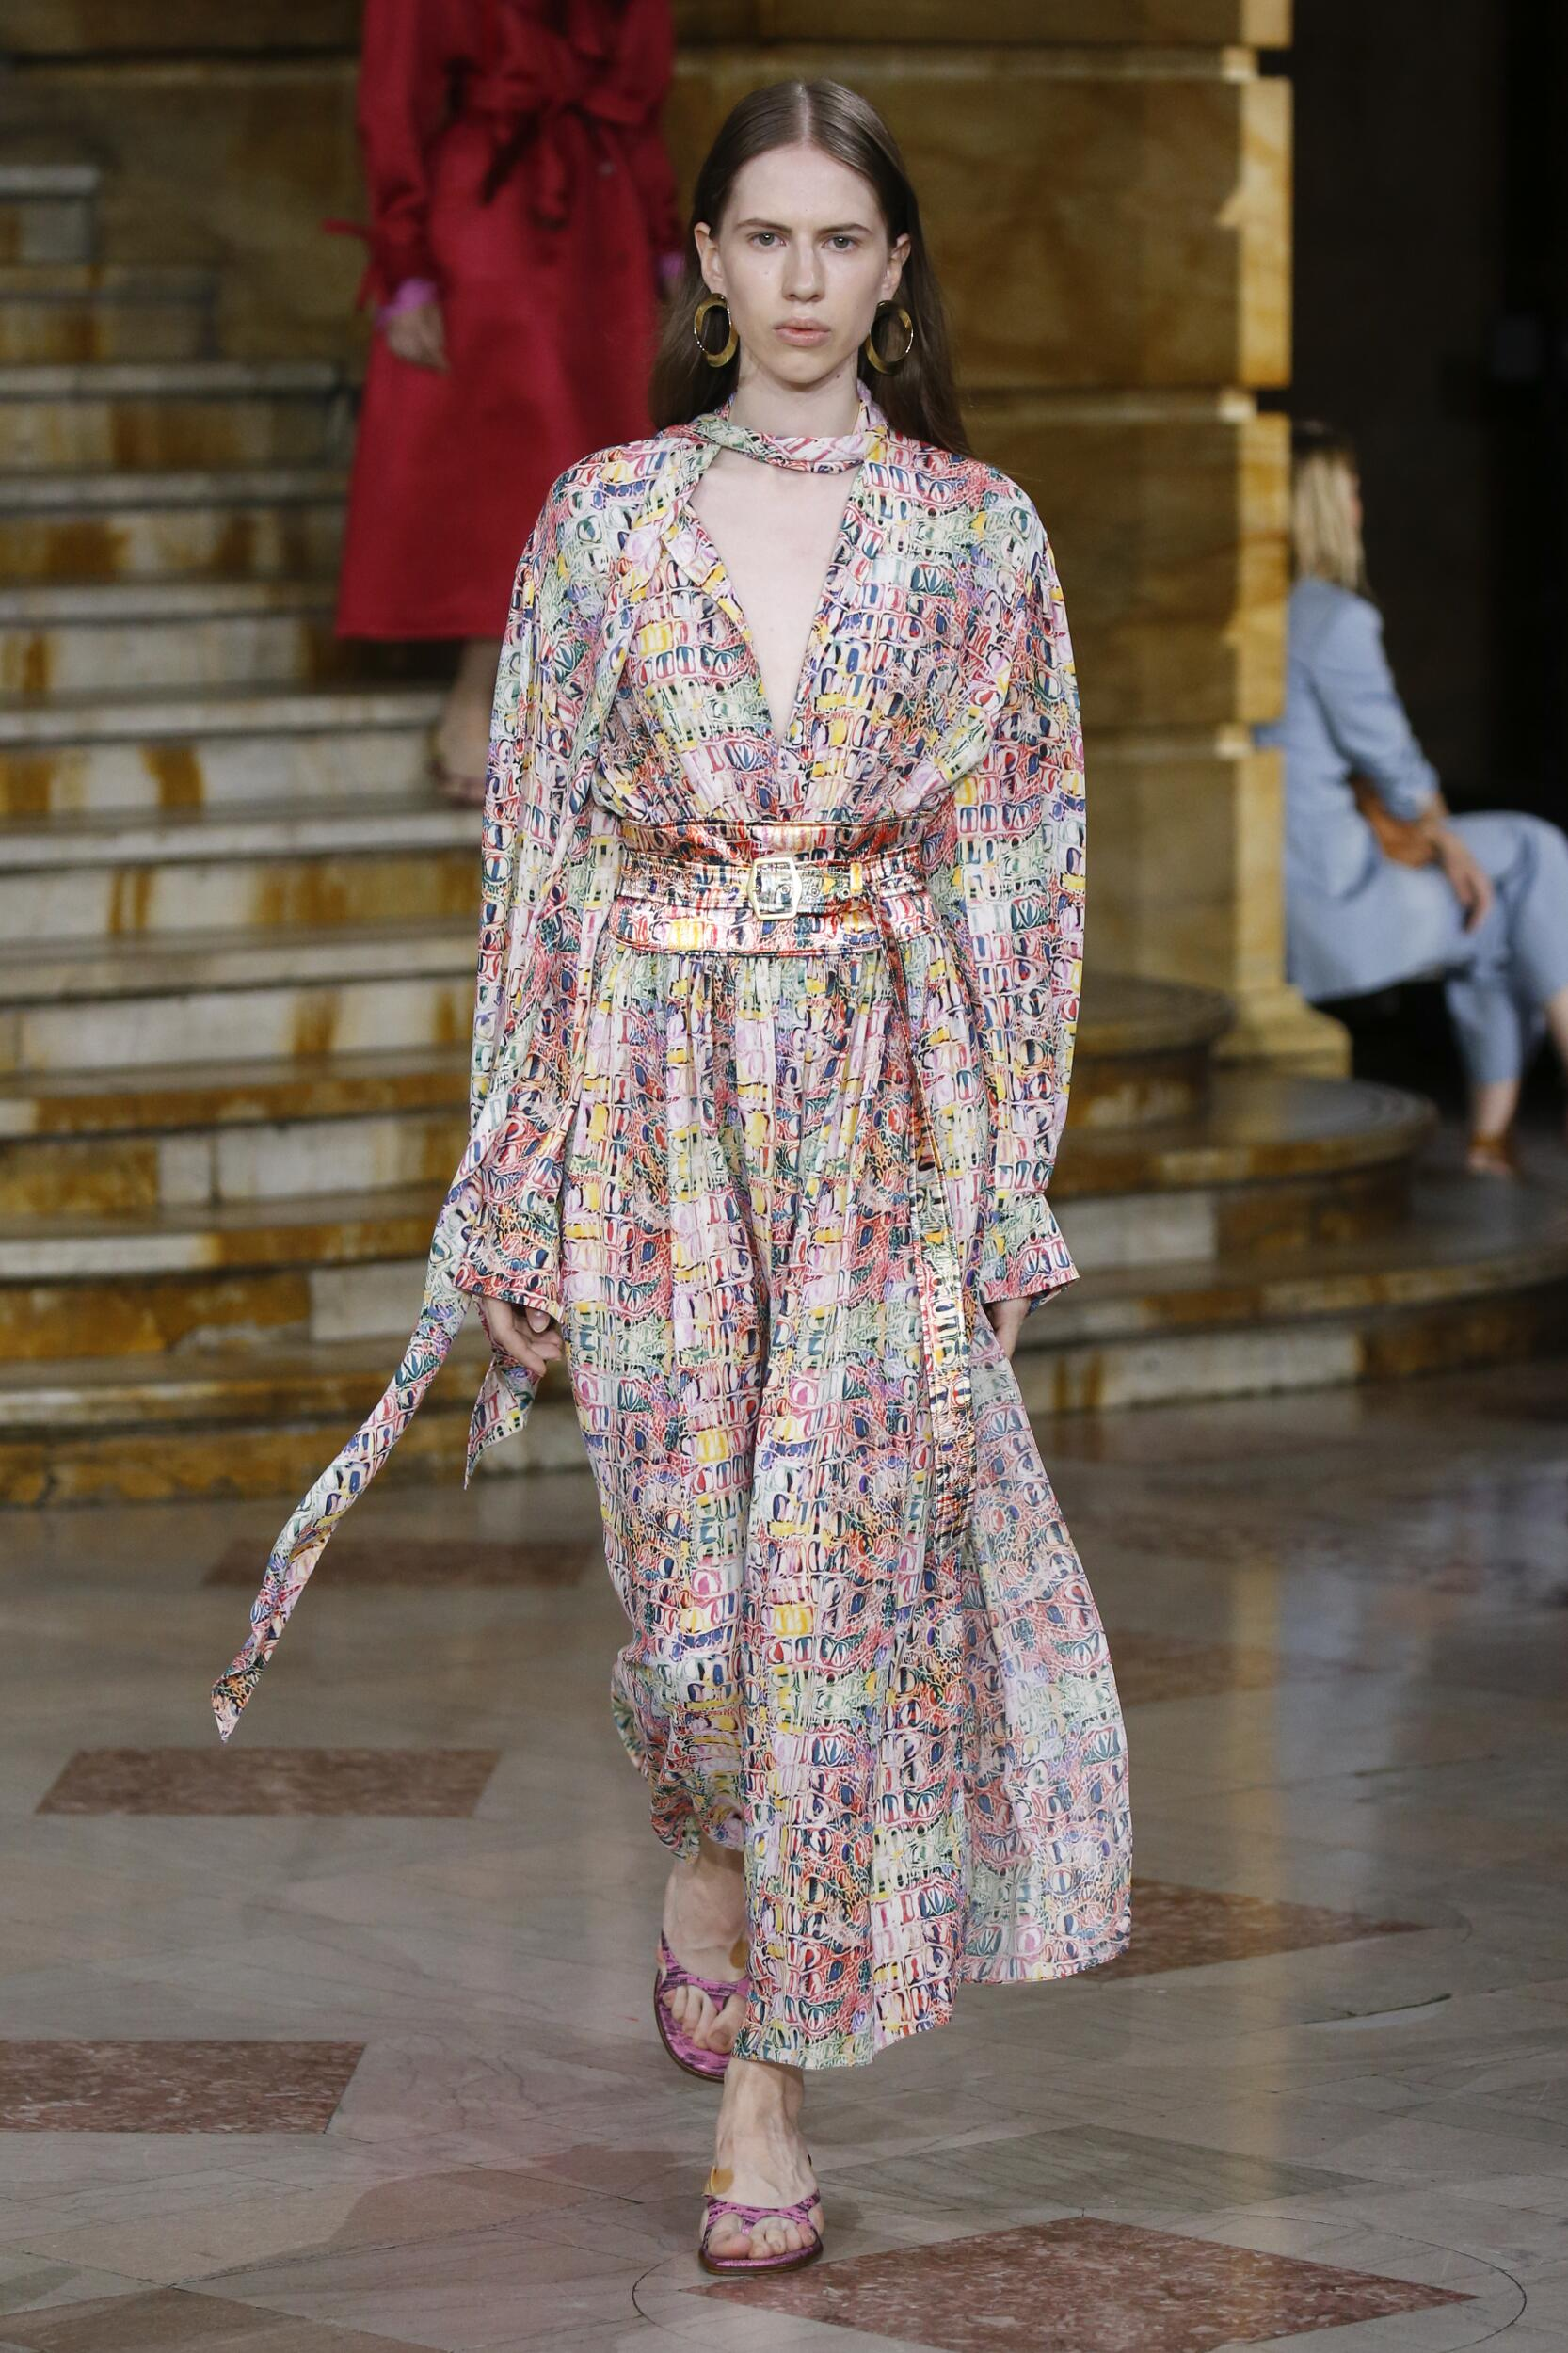 Spring 2020 Fashion Trends Sies Marjan